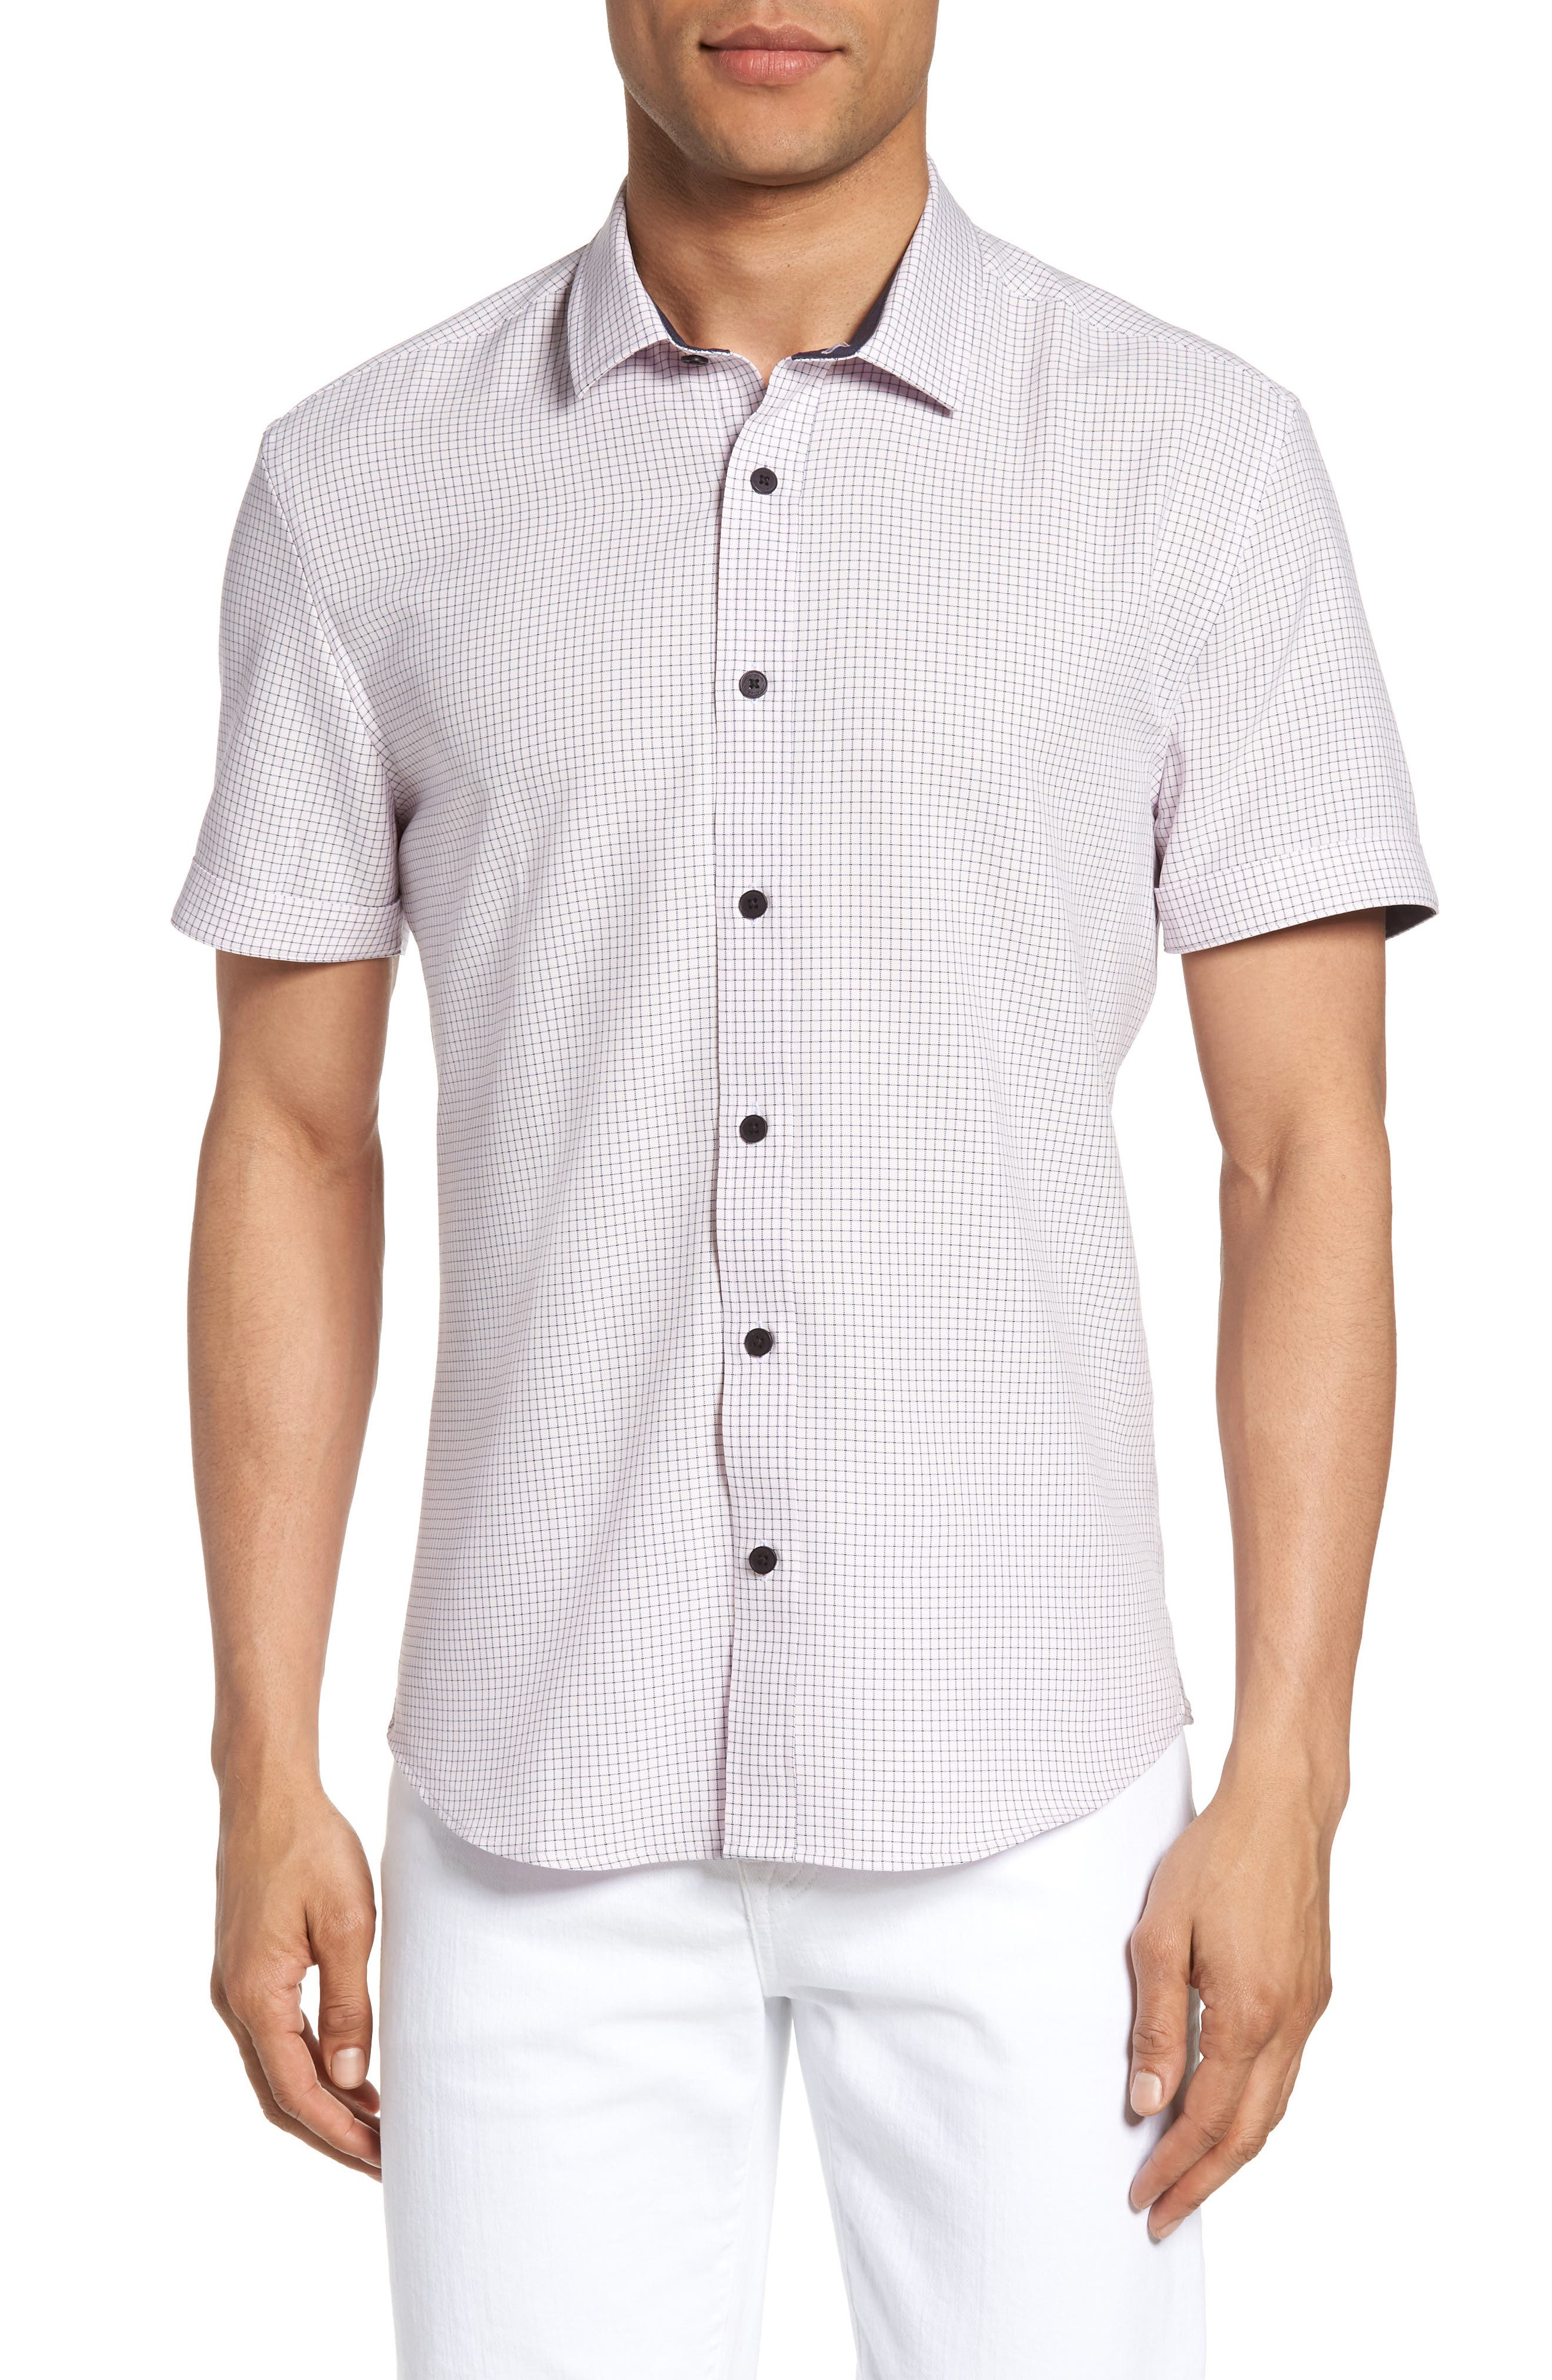 Main Image - Vince Camuto Check Sport Shirt